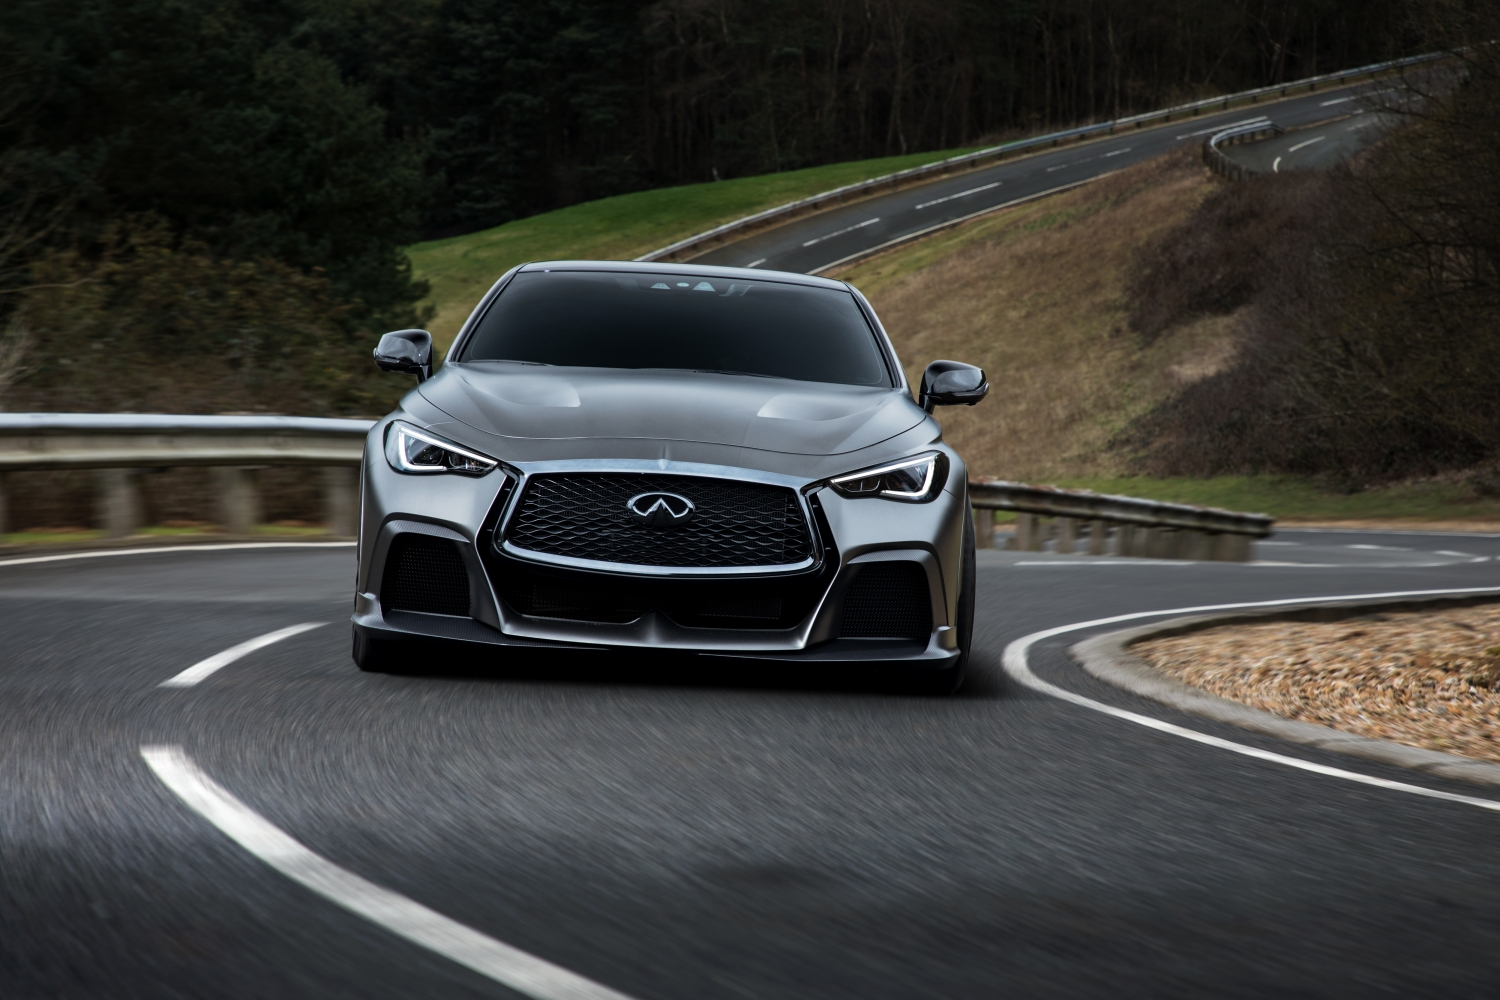 infiniti q60 blacked out. infinitiq6coupeprojectblacks8 infiniti q60 blacked out